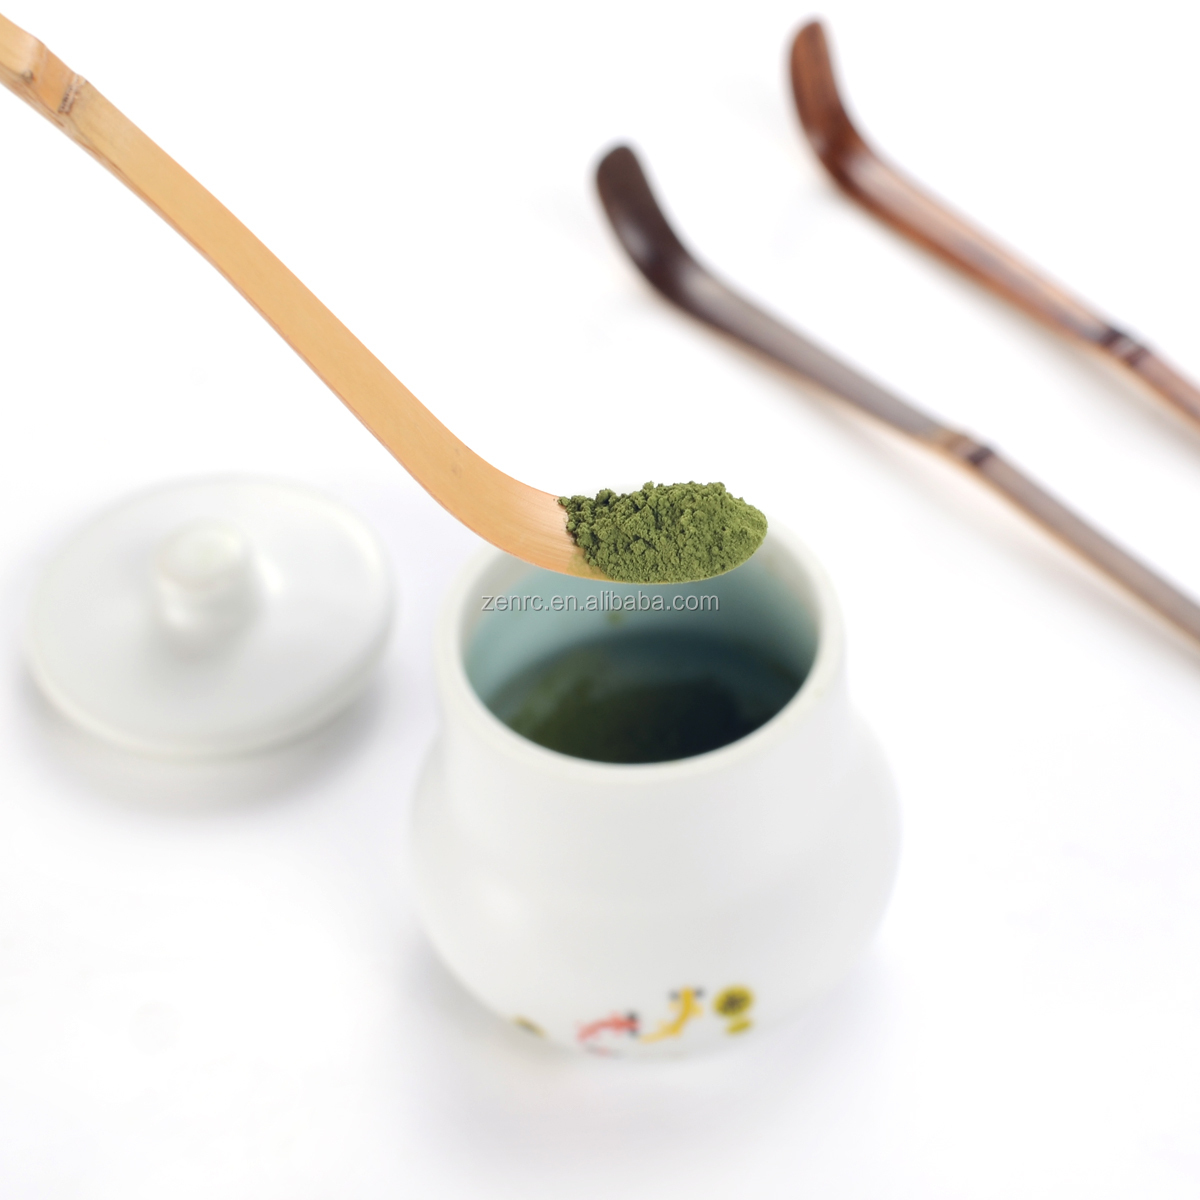 Super Handmade Natural Bamboo Matcha Scoop for Japanese Tea Ceremony